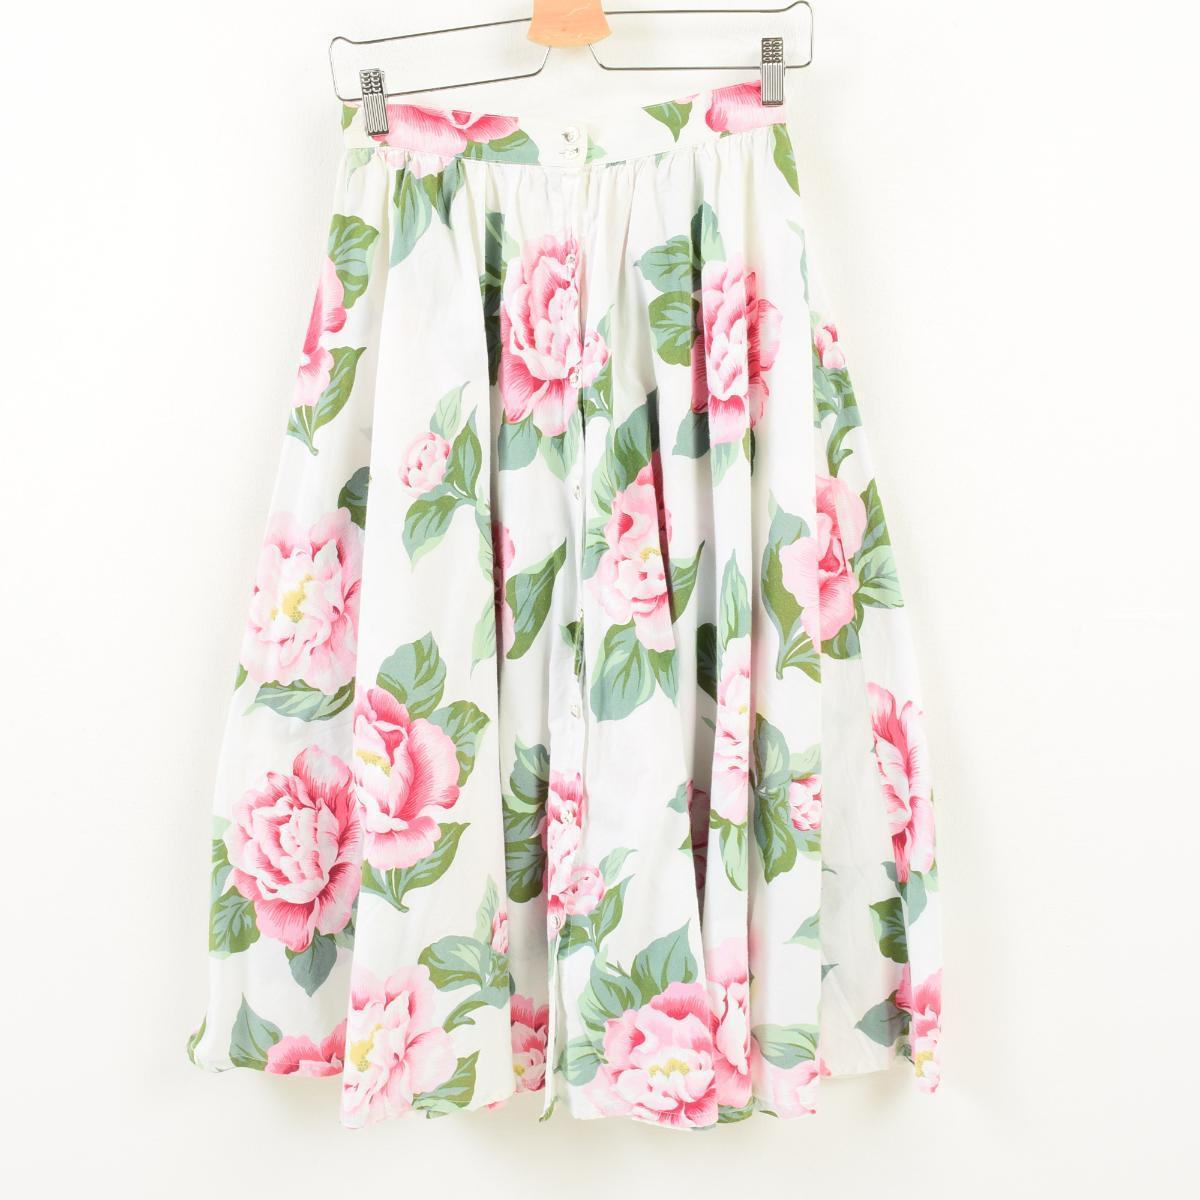 8513aede20 Lady s M  wak7468 made in ADRIENNE VITTADINI floral design fastening in  front cotton long gathered skirt USA